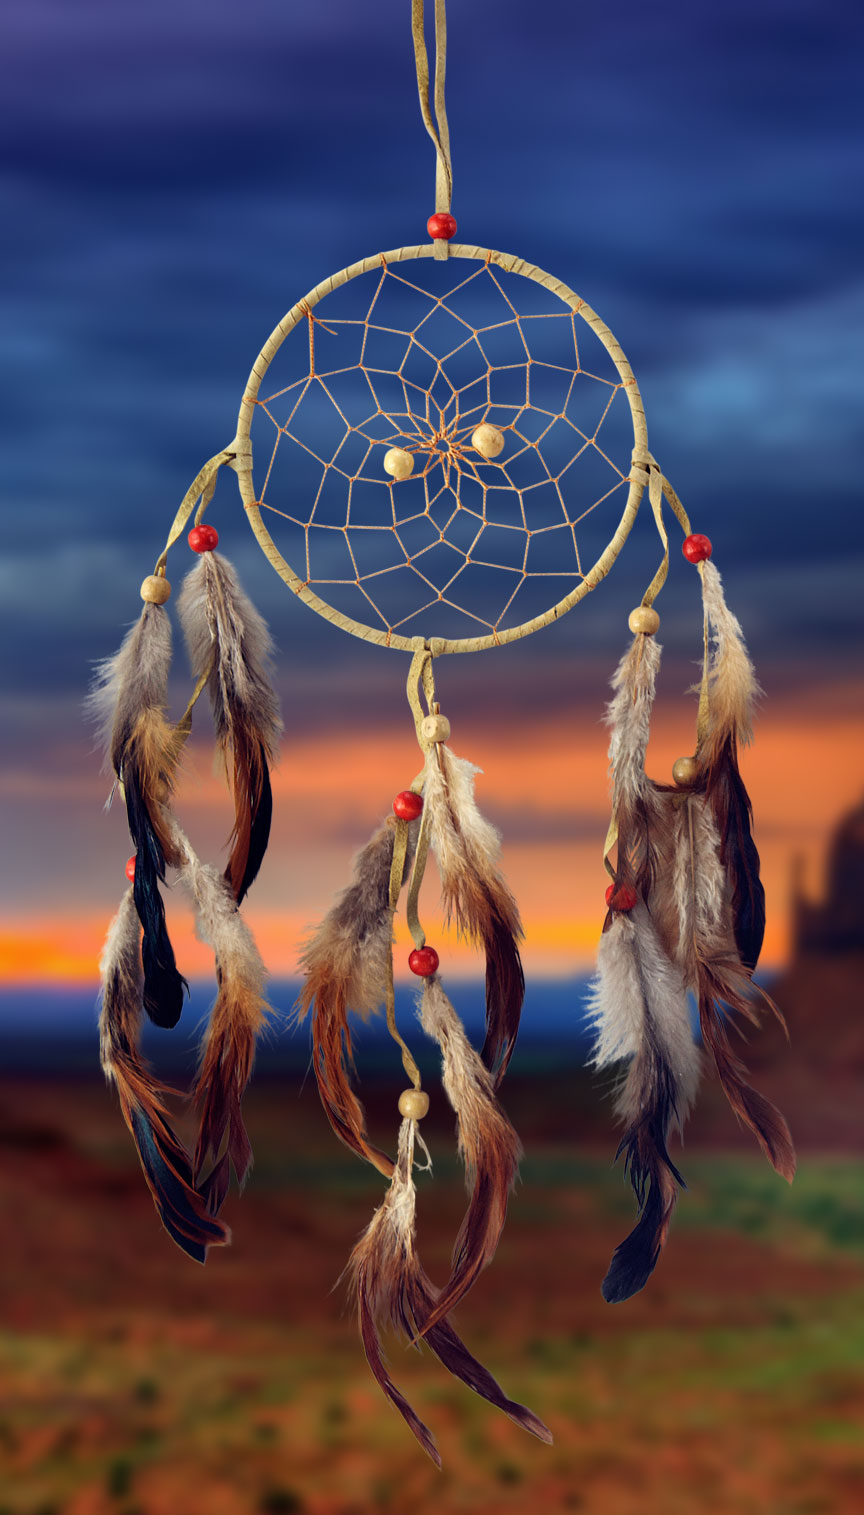 Shows an image of dreamcatcher owg002 on a scenic background